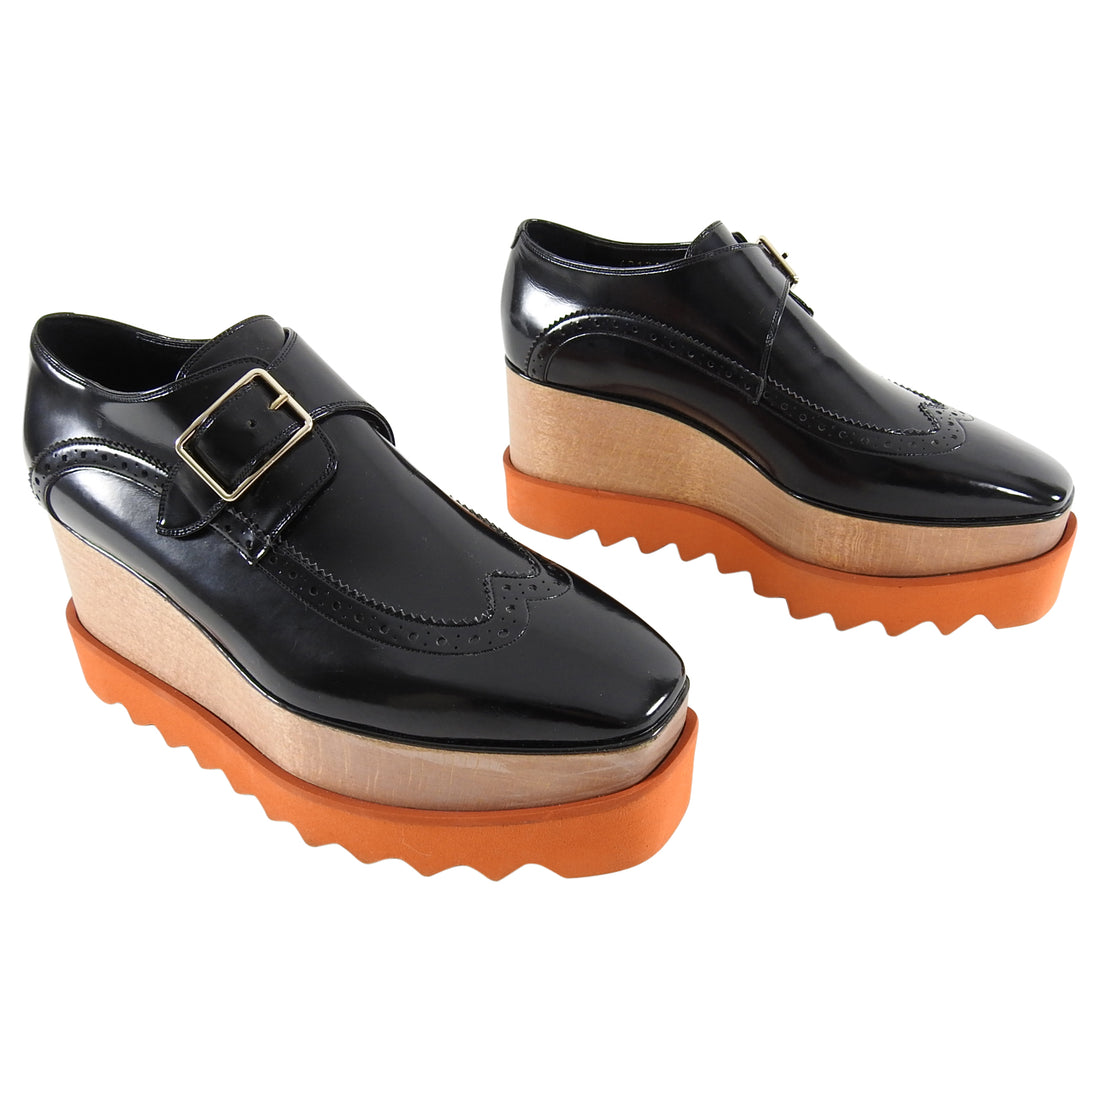 Stella McCartney Dana Platform Oxford Brogues - 6.5